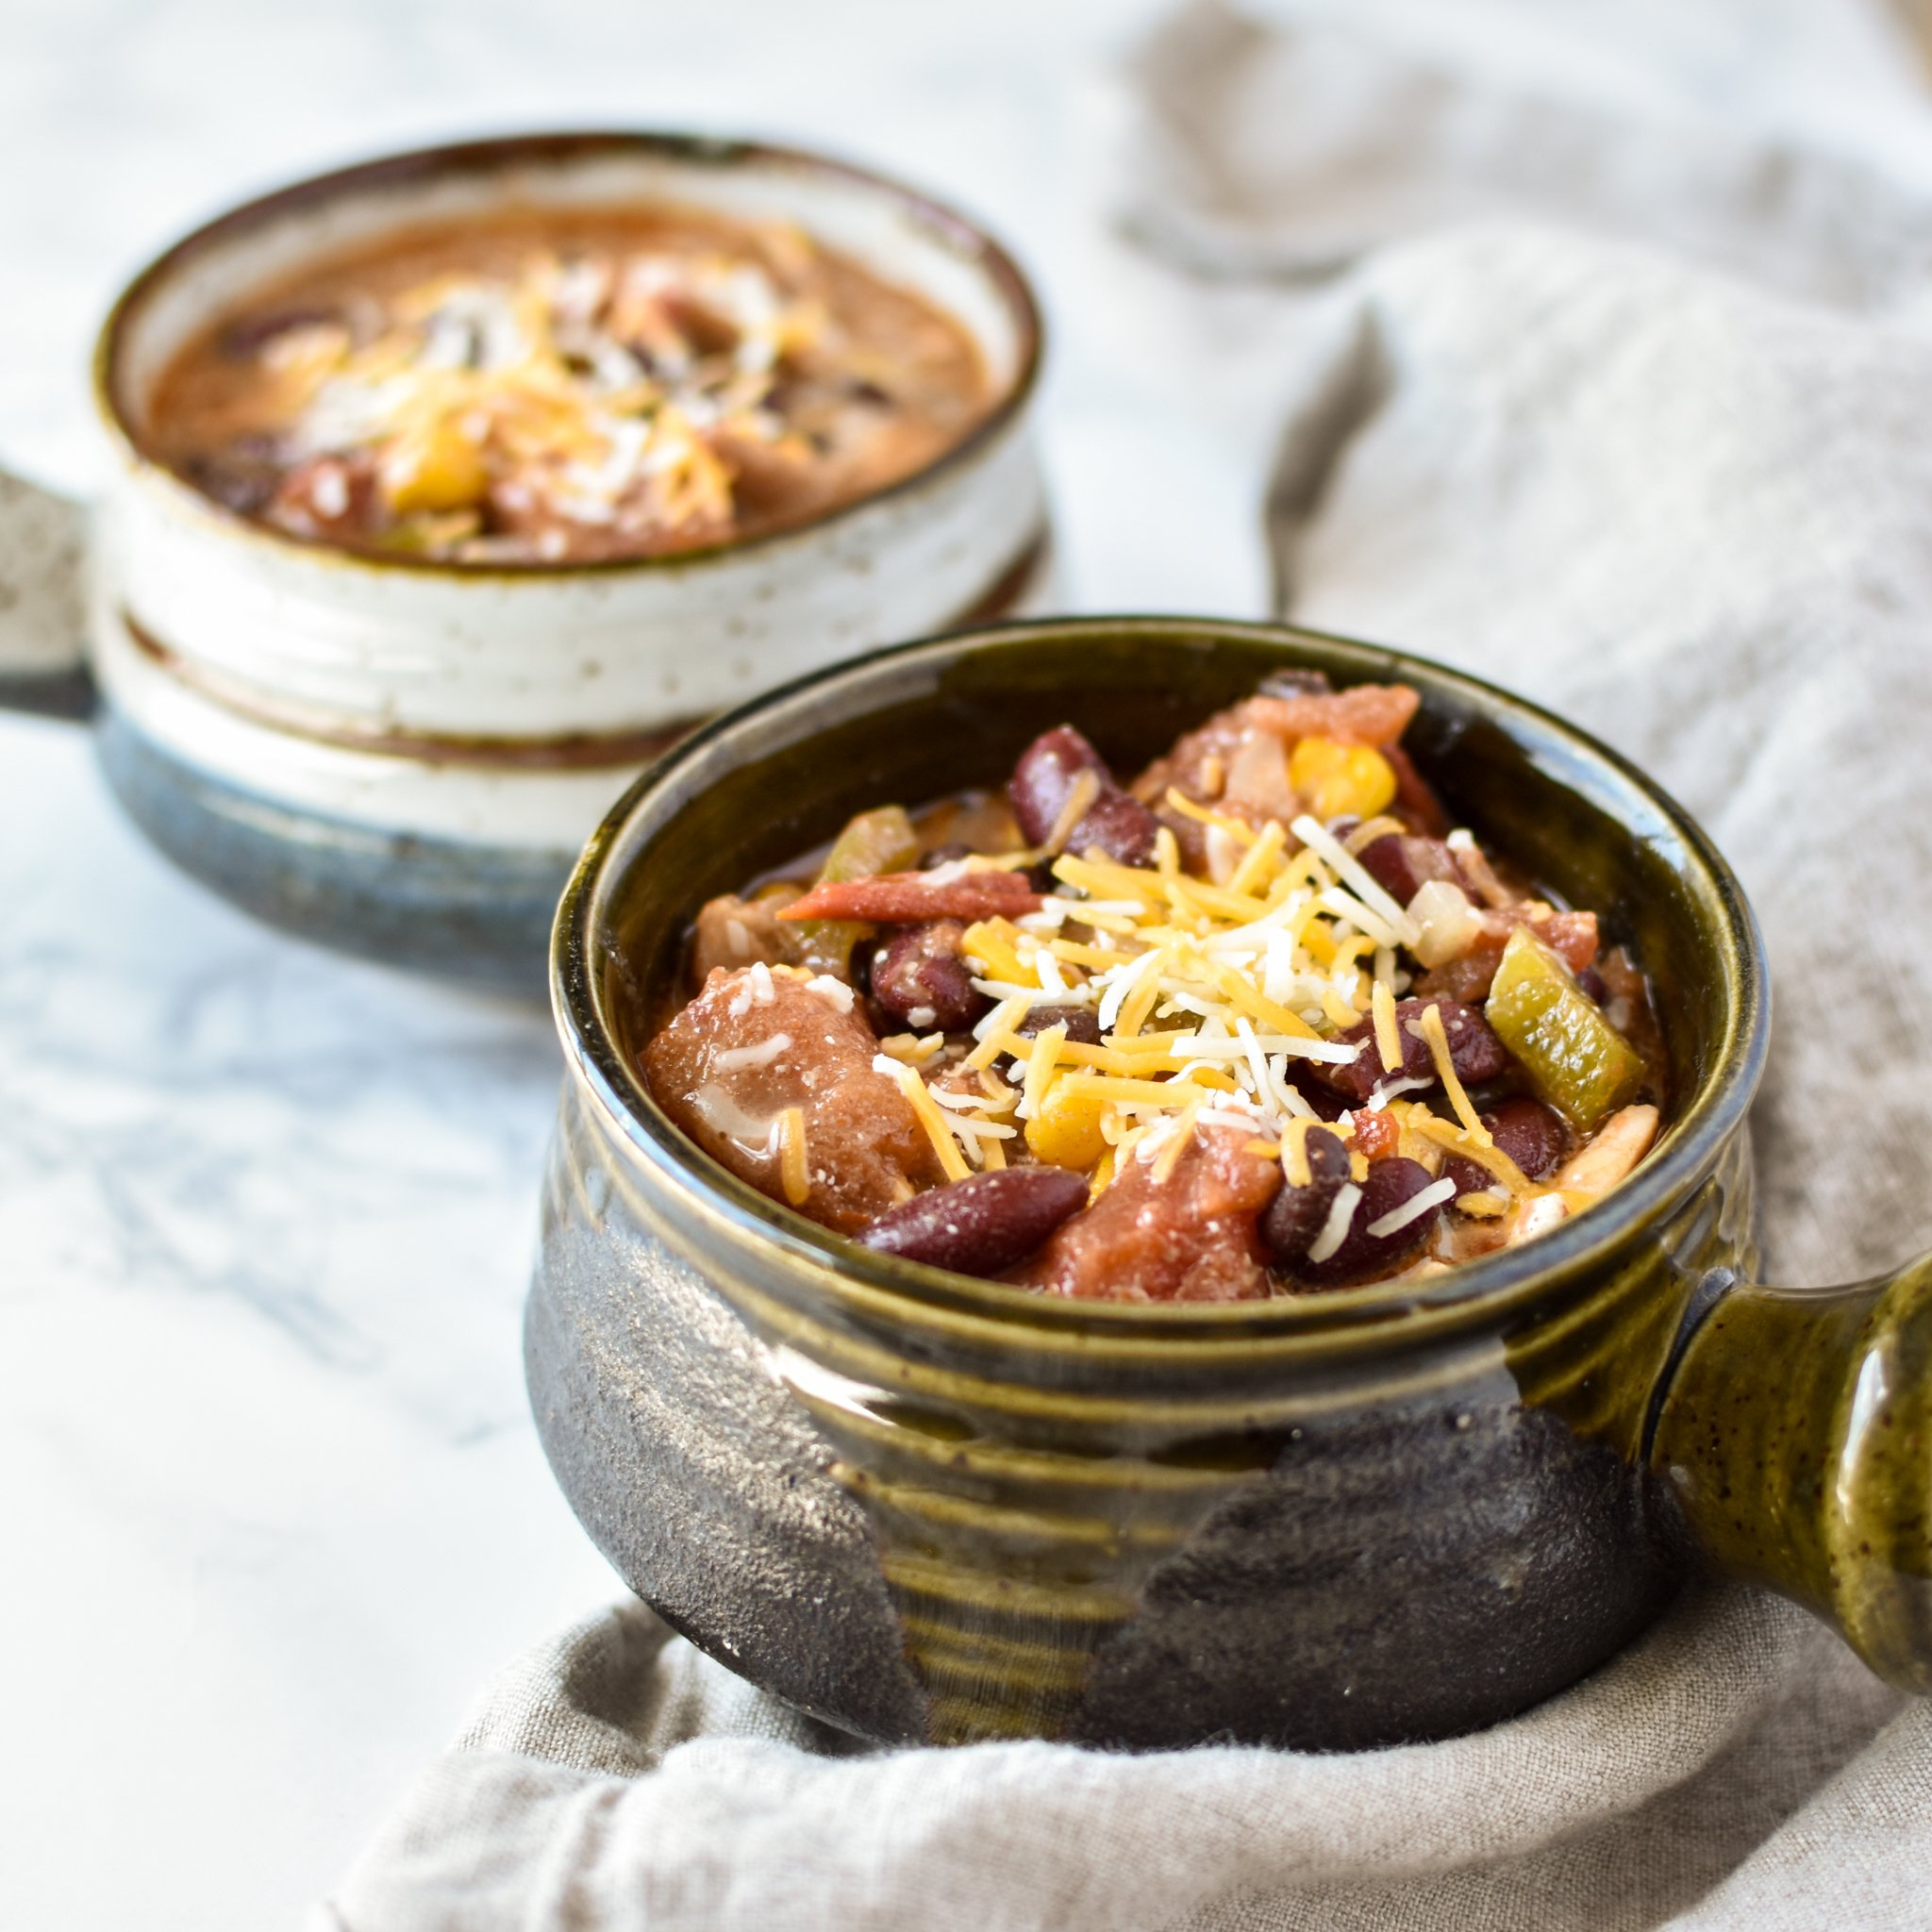 Easy Crockpot Chicken Thigh Taco Chili - Super easy crock pot taco chili to help clear out your pantry! Set it and forget it :) - ProjectMealPlan.com